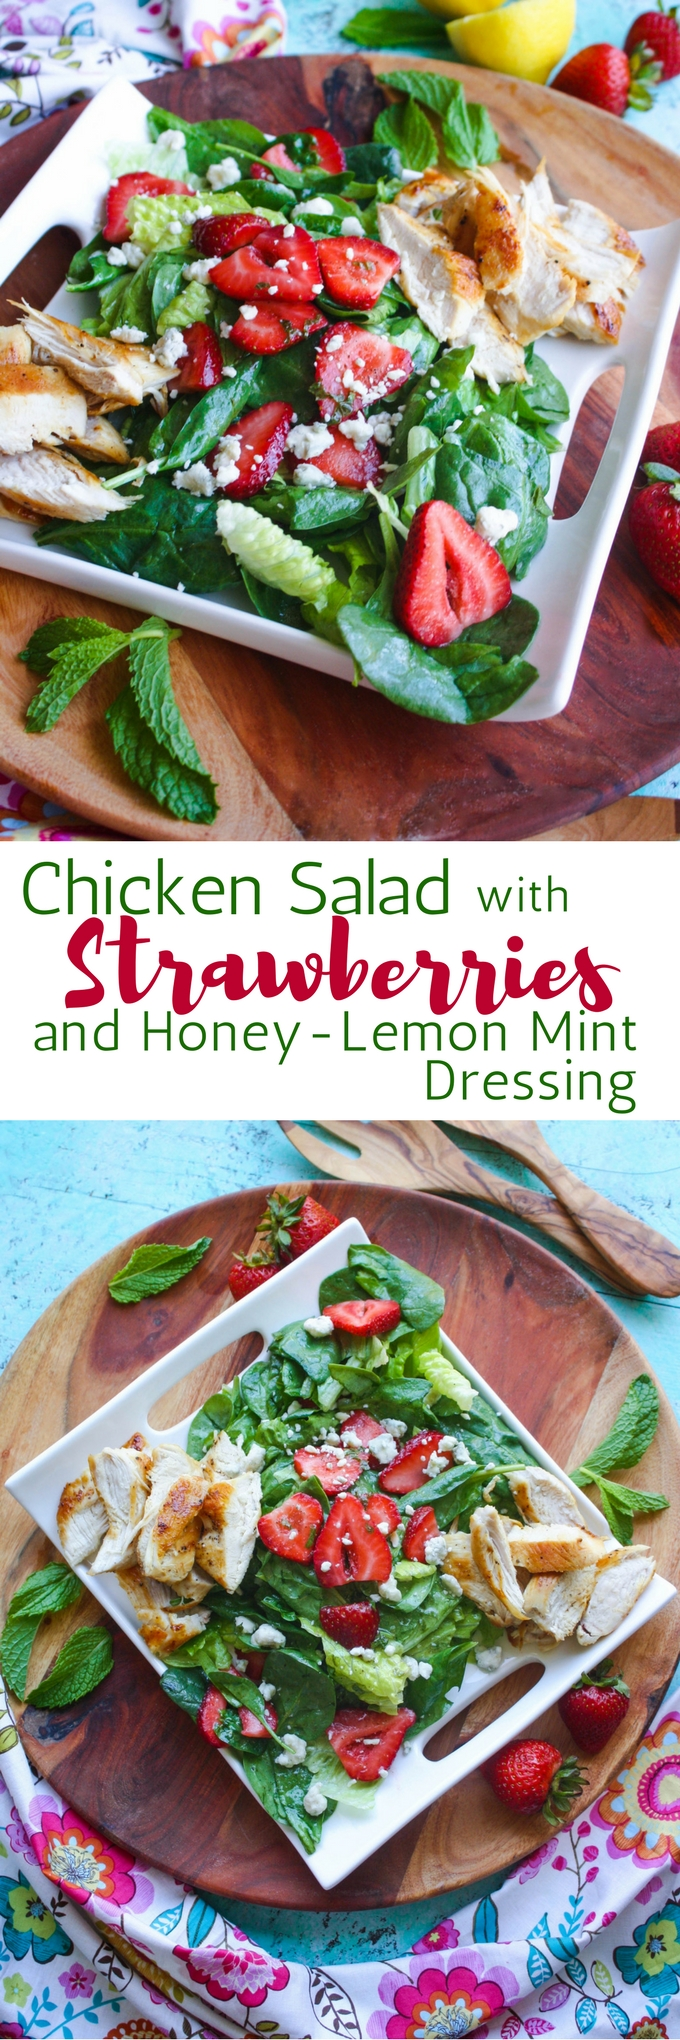 Chicken Salad with Strawberries and Honey-Lemon Mint Dressing is a no-fuss meal perfect for the summer. This salad is filling and you'll love the flavors and colors!